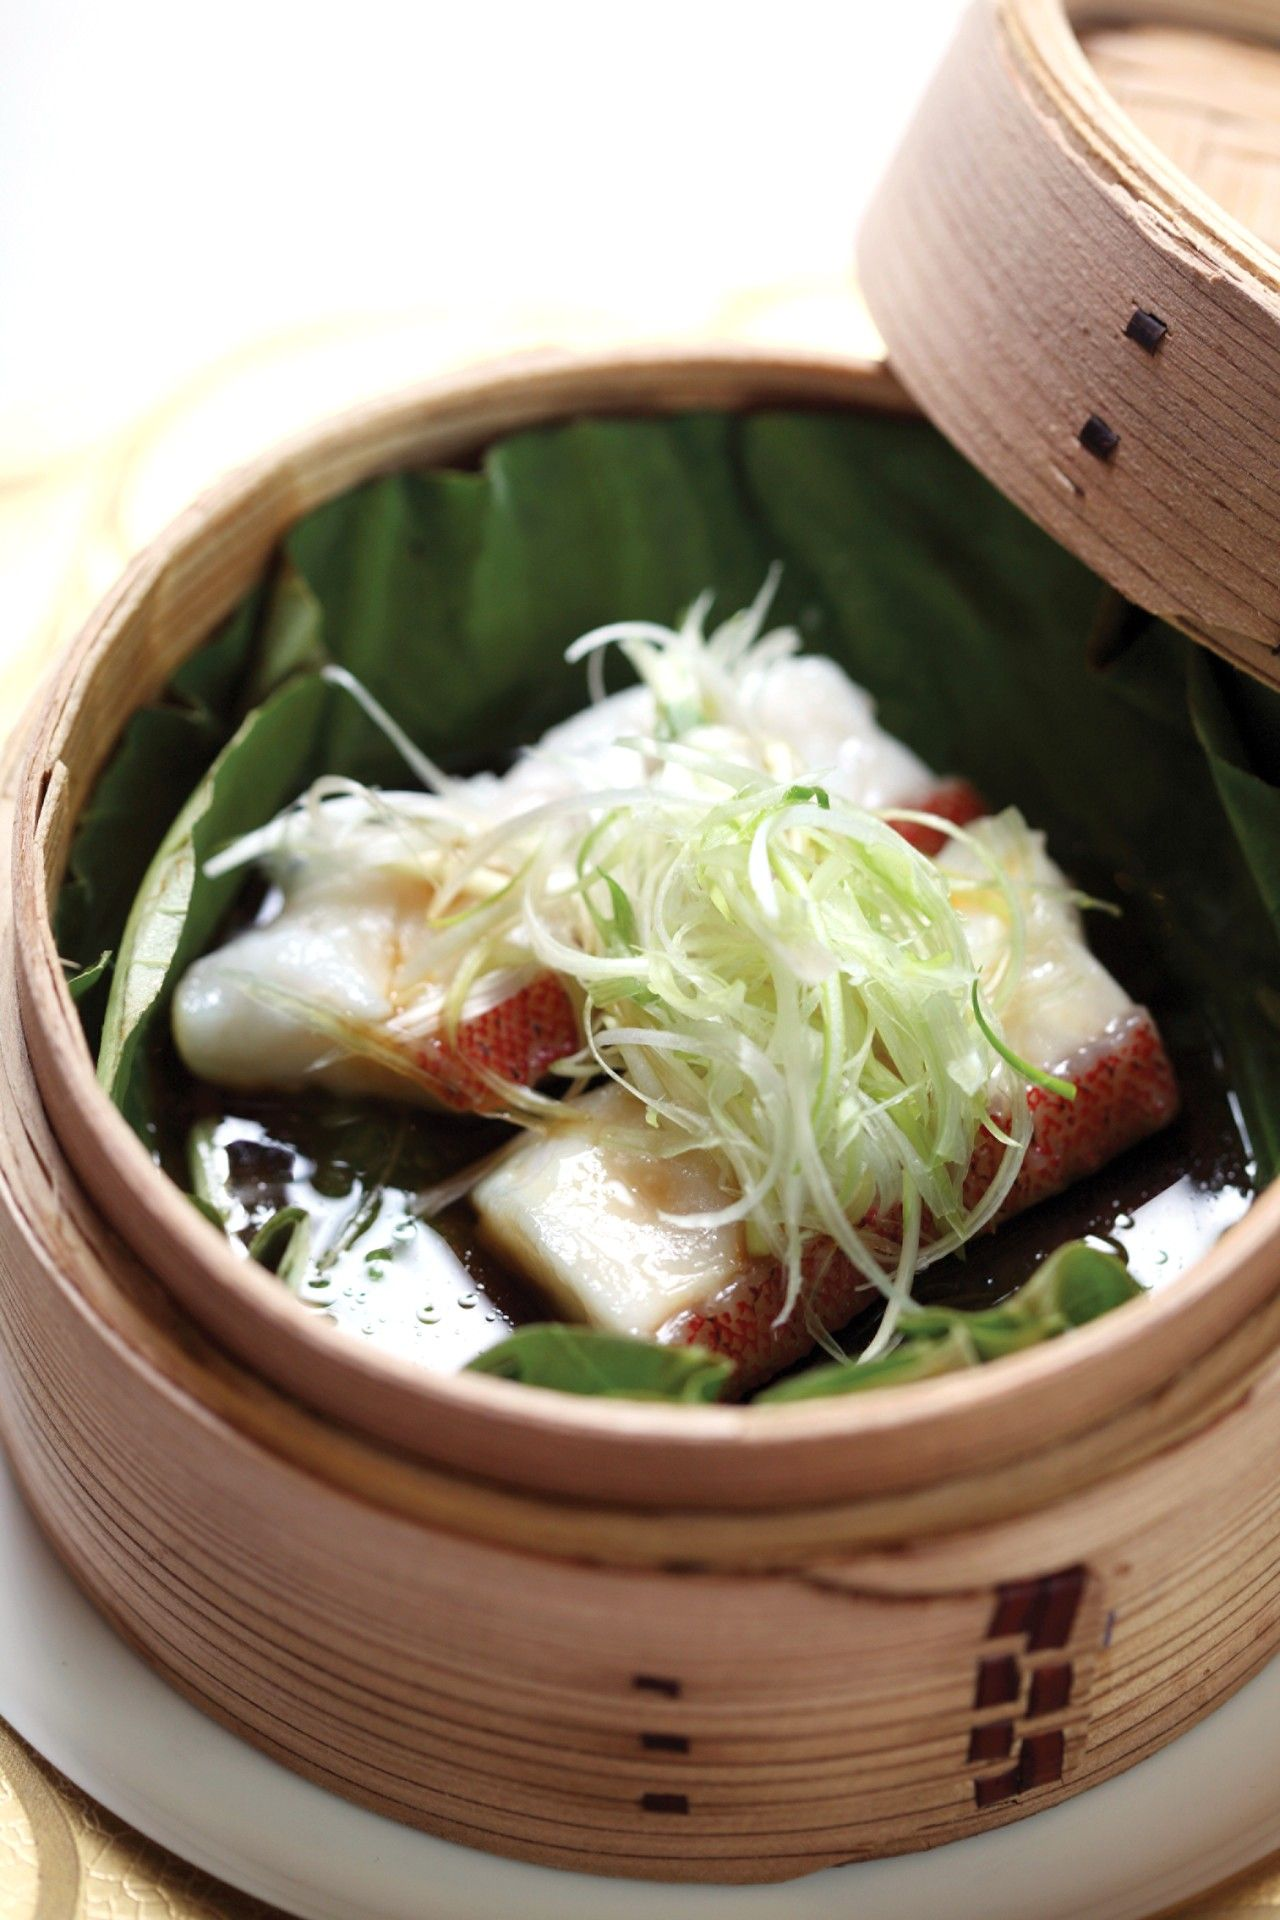 Seafood And Dim Sum Are Specialties At Four Seasons Hotel Hong Kong S Lung King Heen The World S First Chinese Restaurant To Food Presentation Food Dim Sum